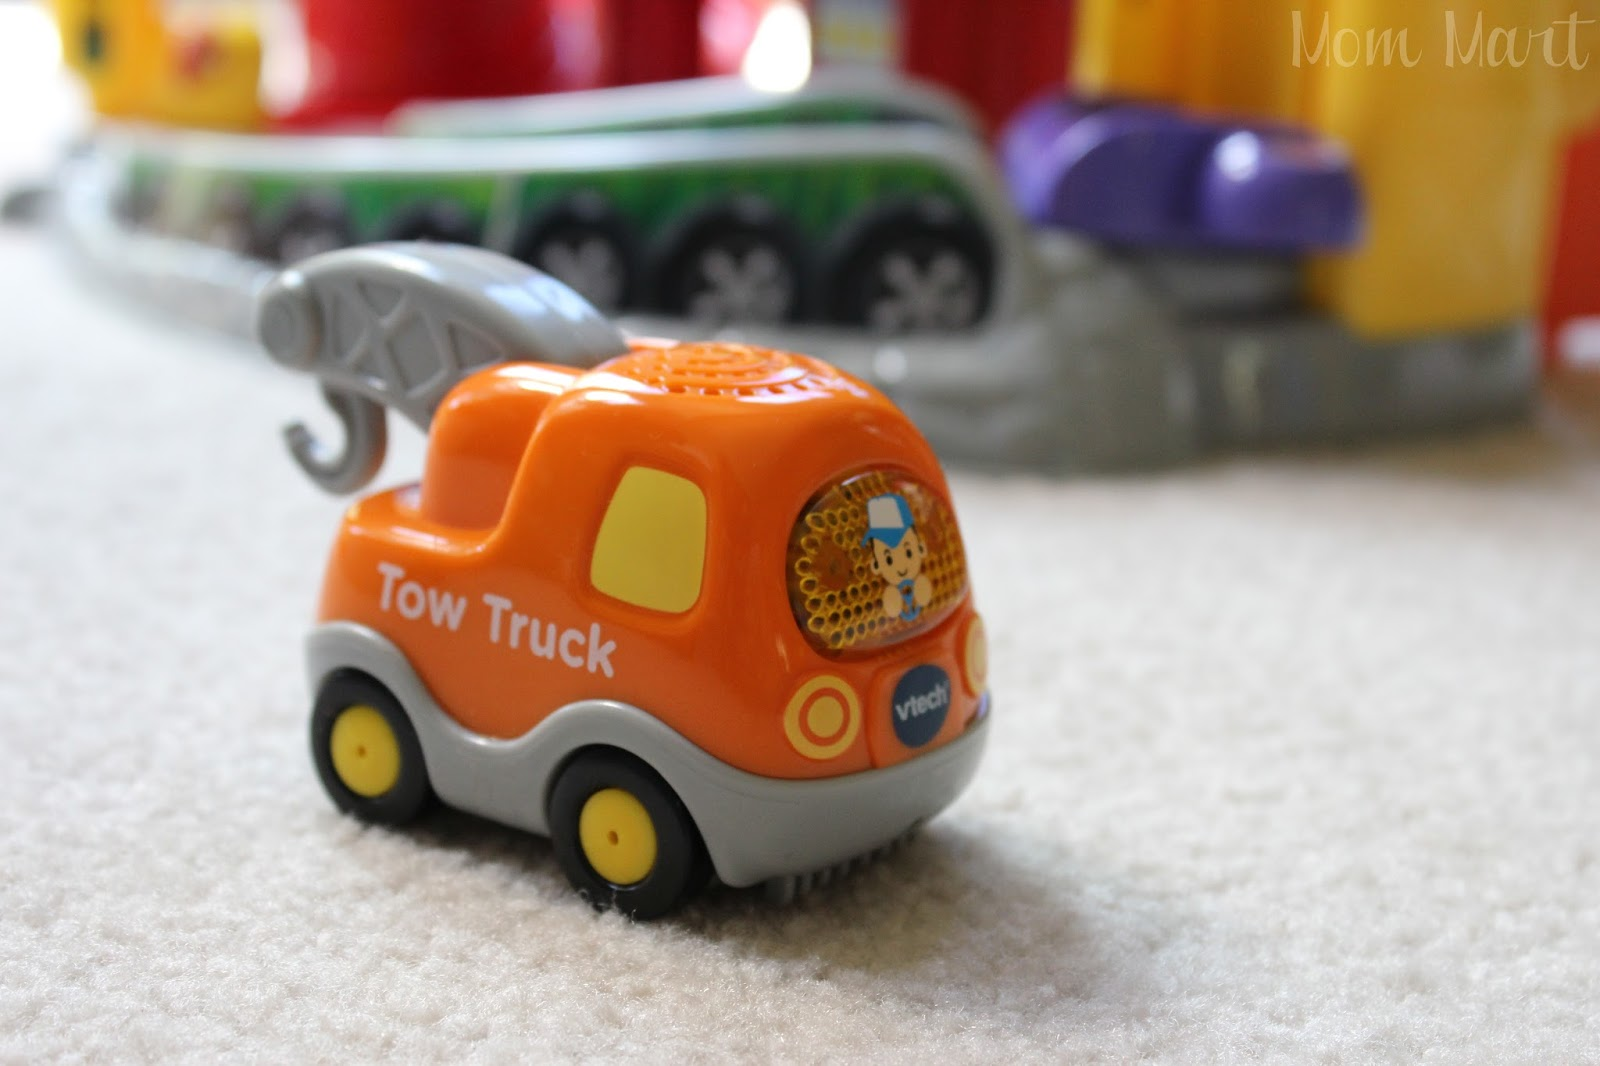 Mom Mart Go Go Smart Wheels Garage Review And Giveaway